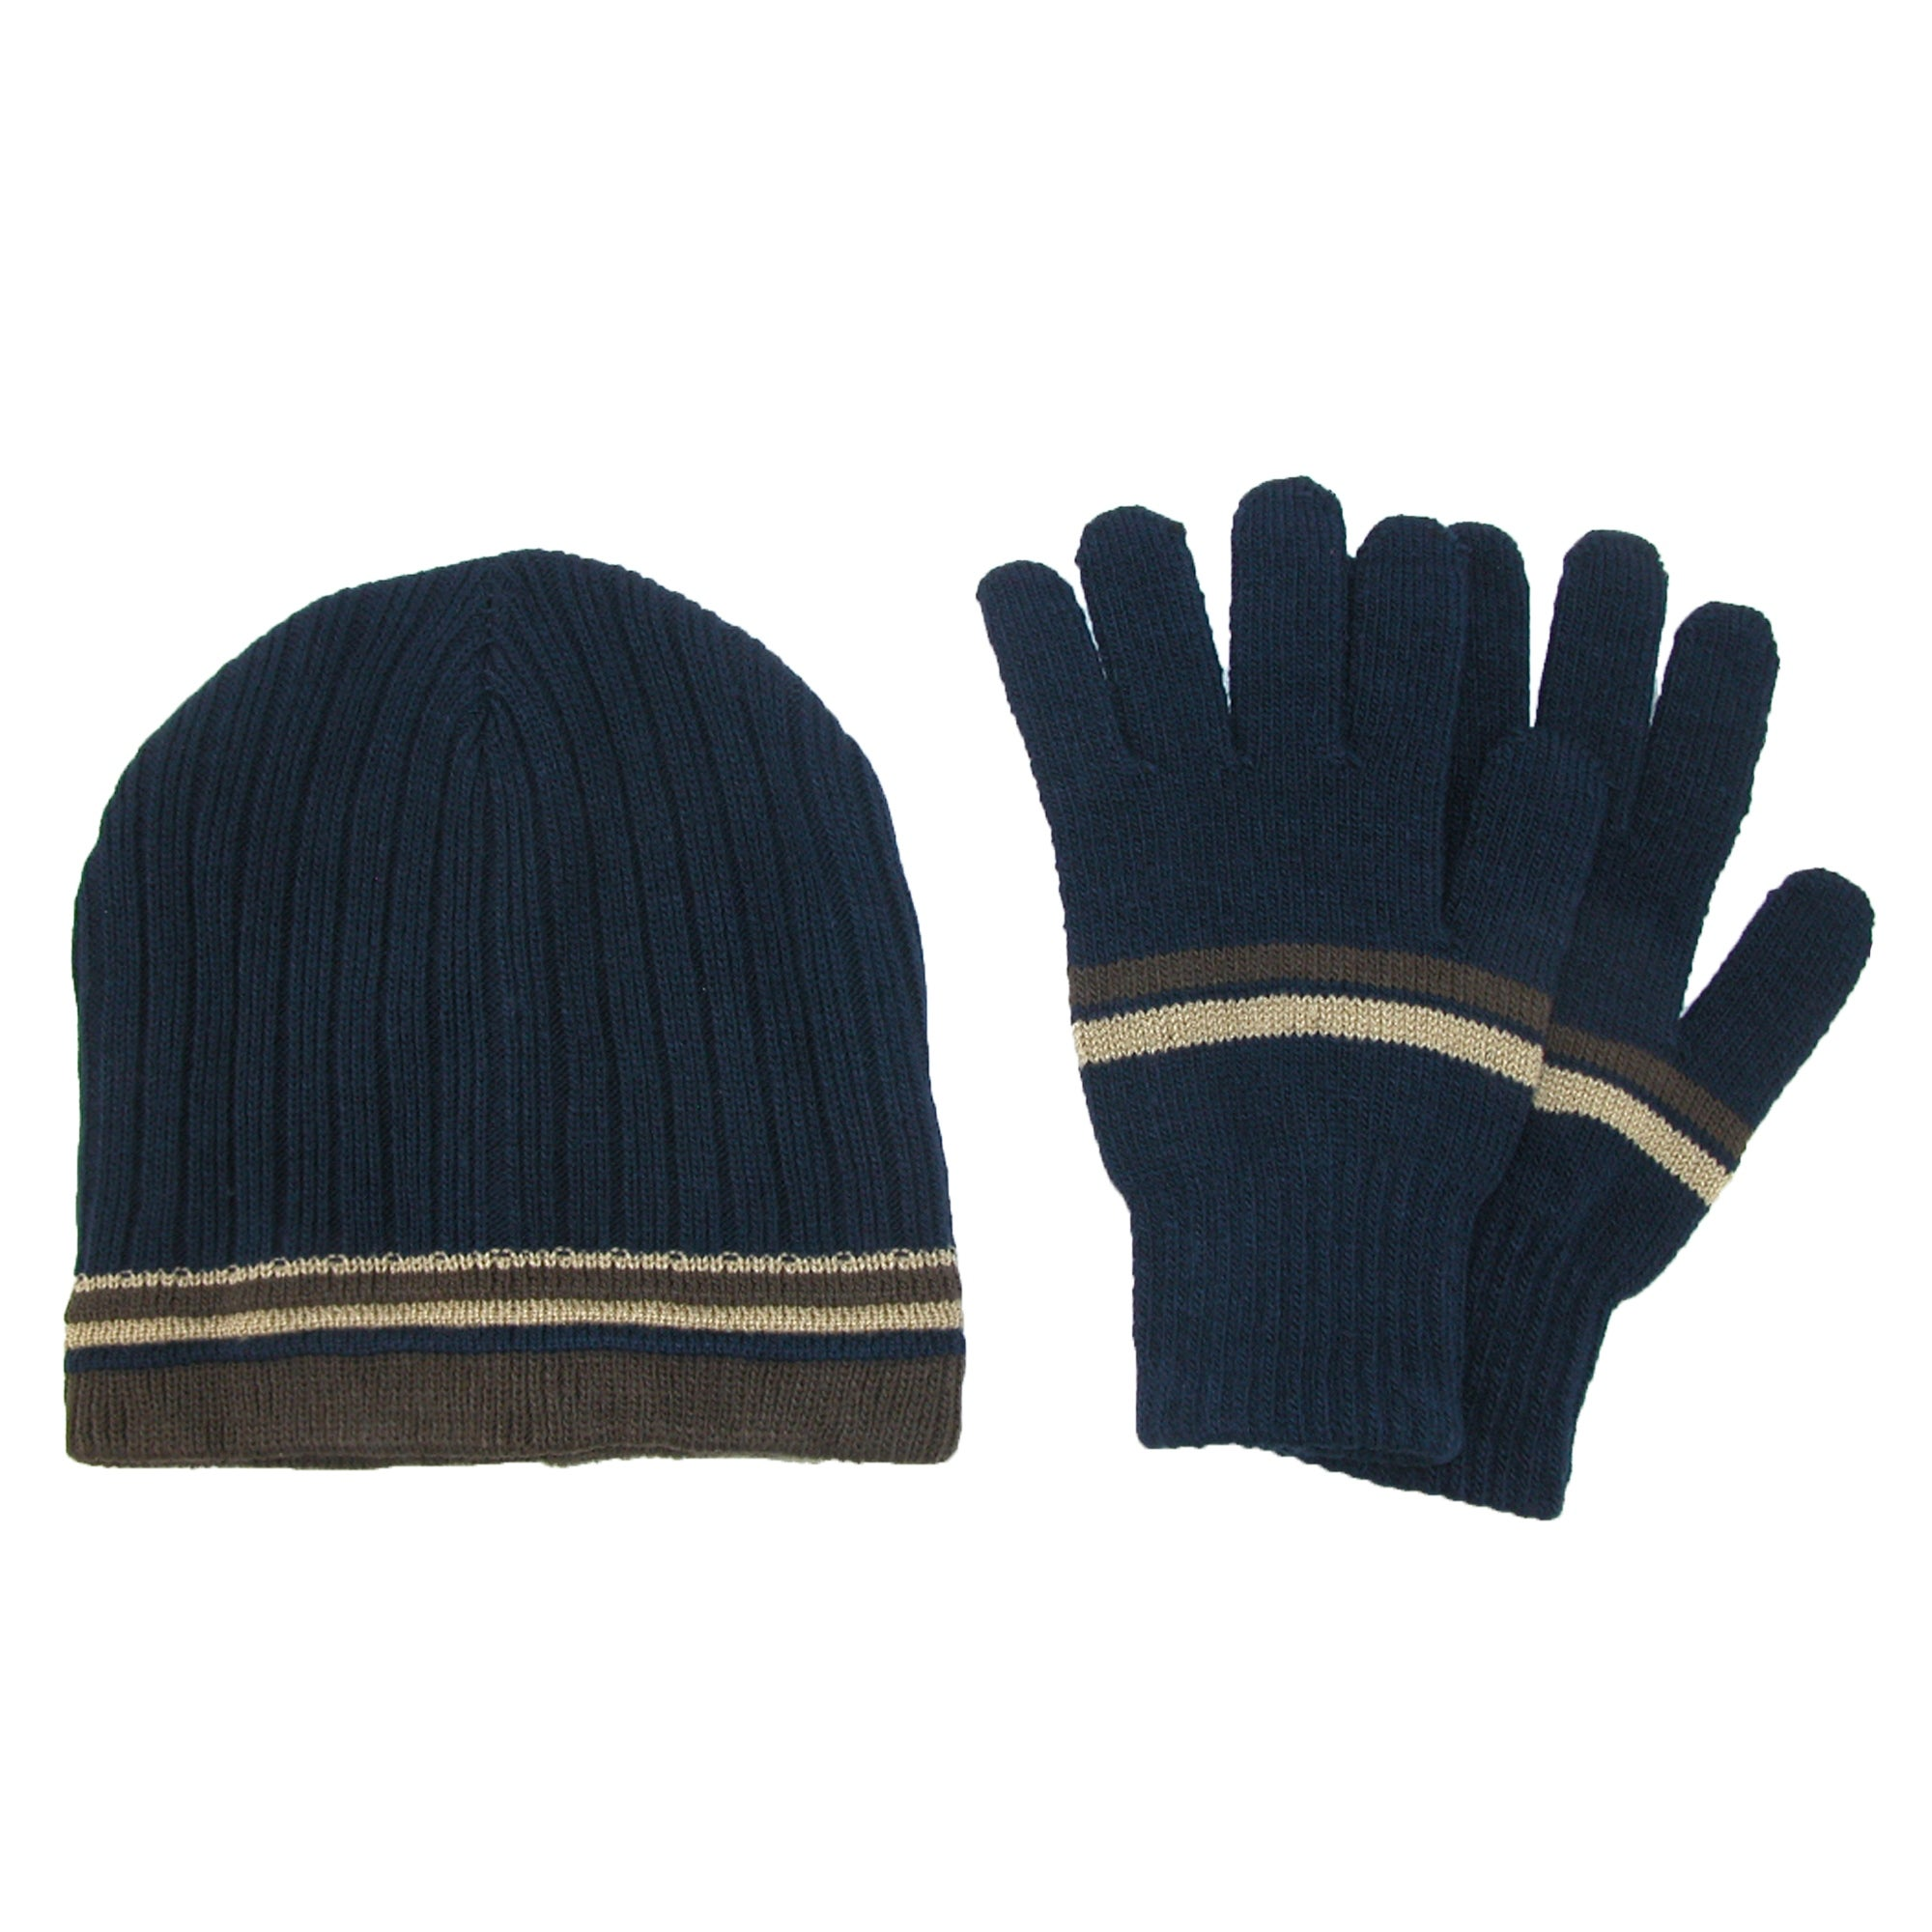 CTM® Men s Knit Striped Beanie and Gloves Winter Set - One size - Free  Shipping On Orders Over  45 - Overstock - 20866491 4bba31bff57